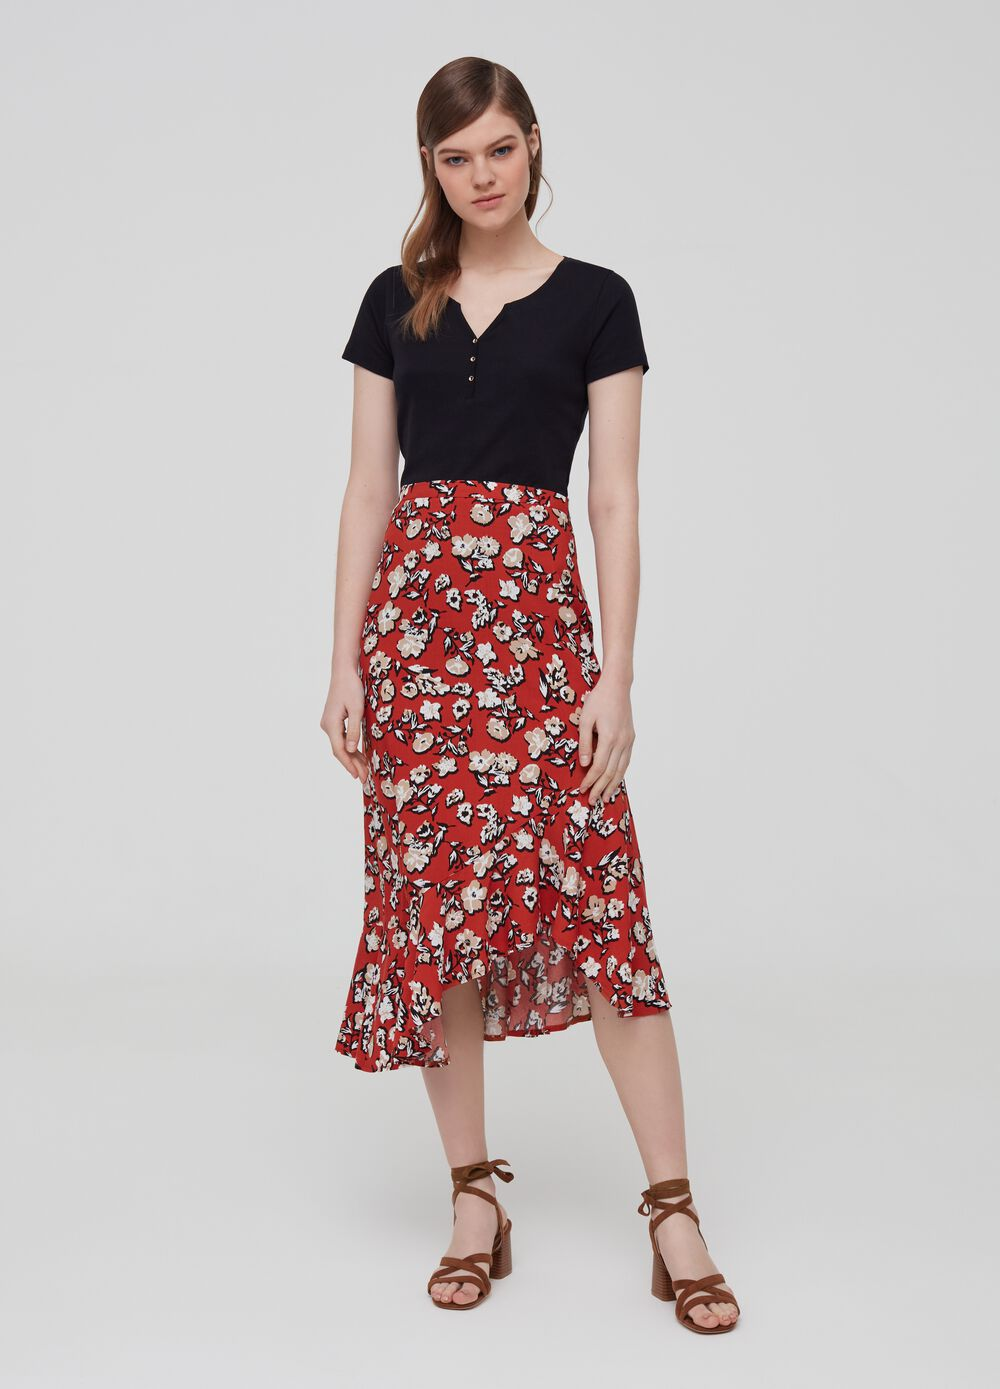 100% viscose skirt with pattern